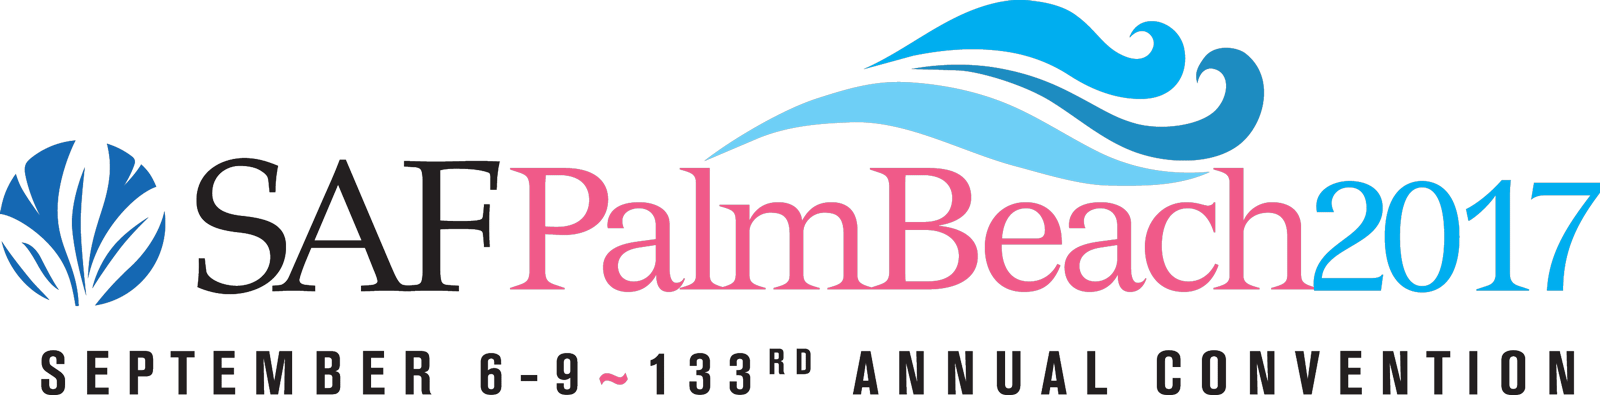 SAF Palm Beach 2017 -SAF's 133rd Annual Convention at The Breakers